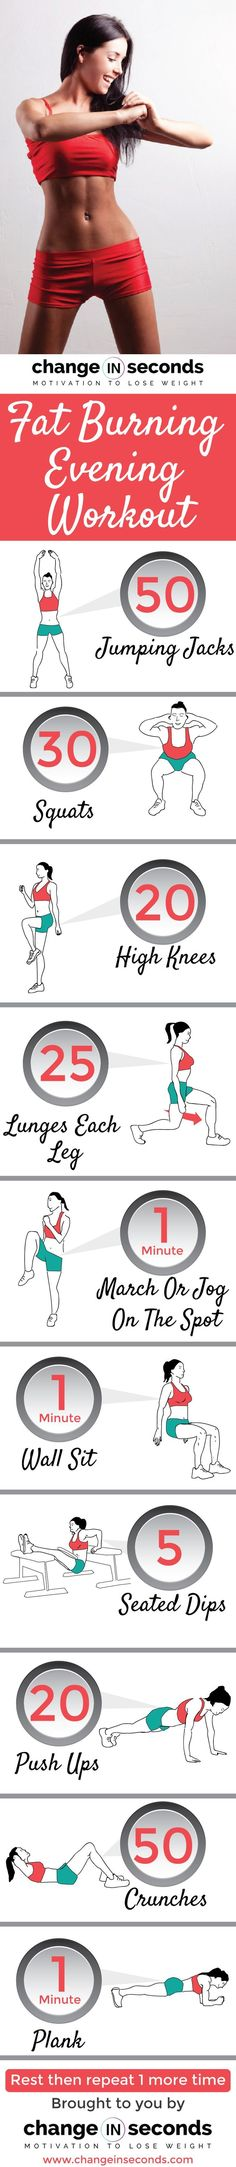 Fat Burning Evening Workout